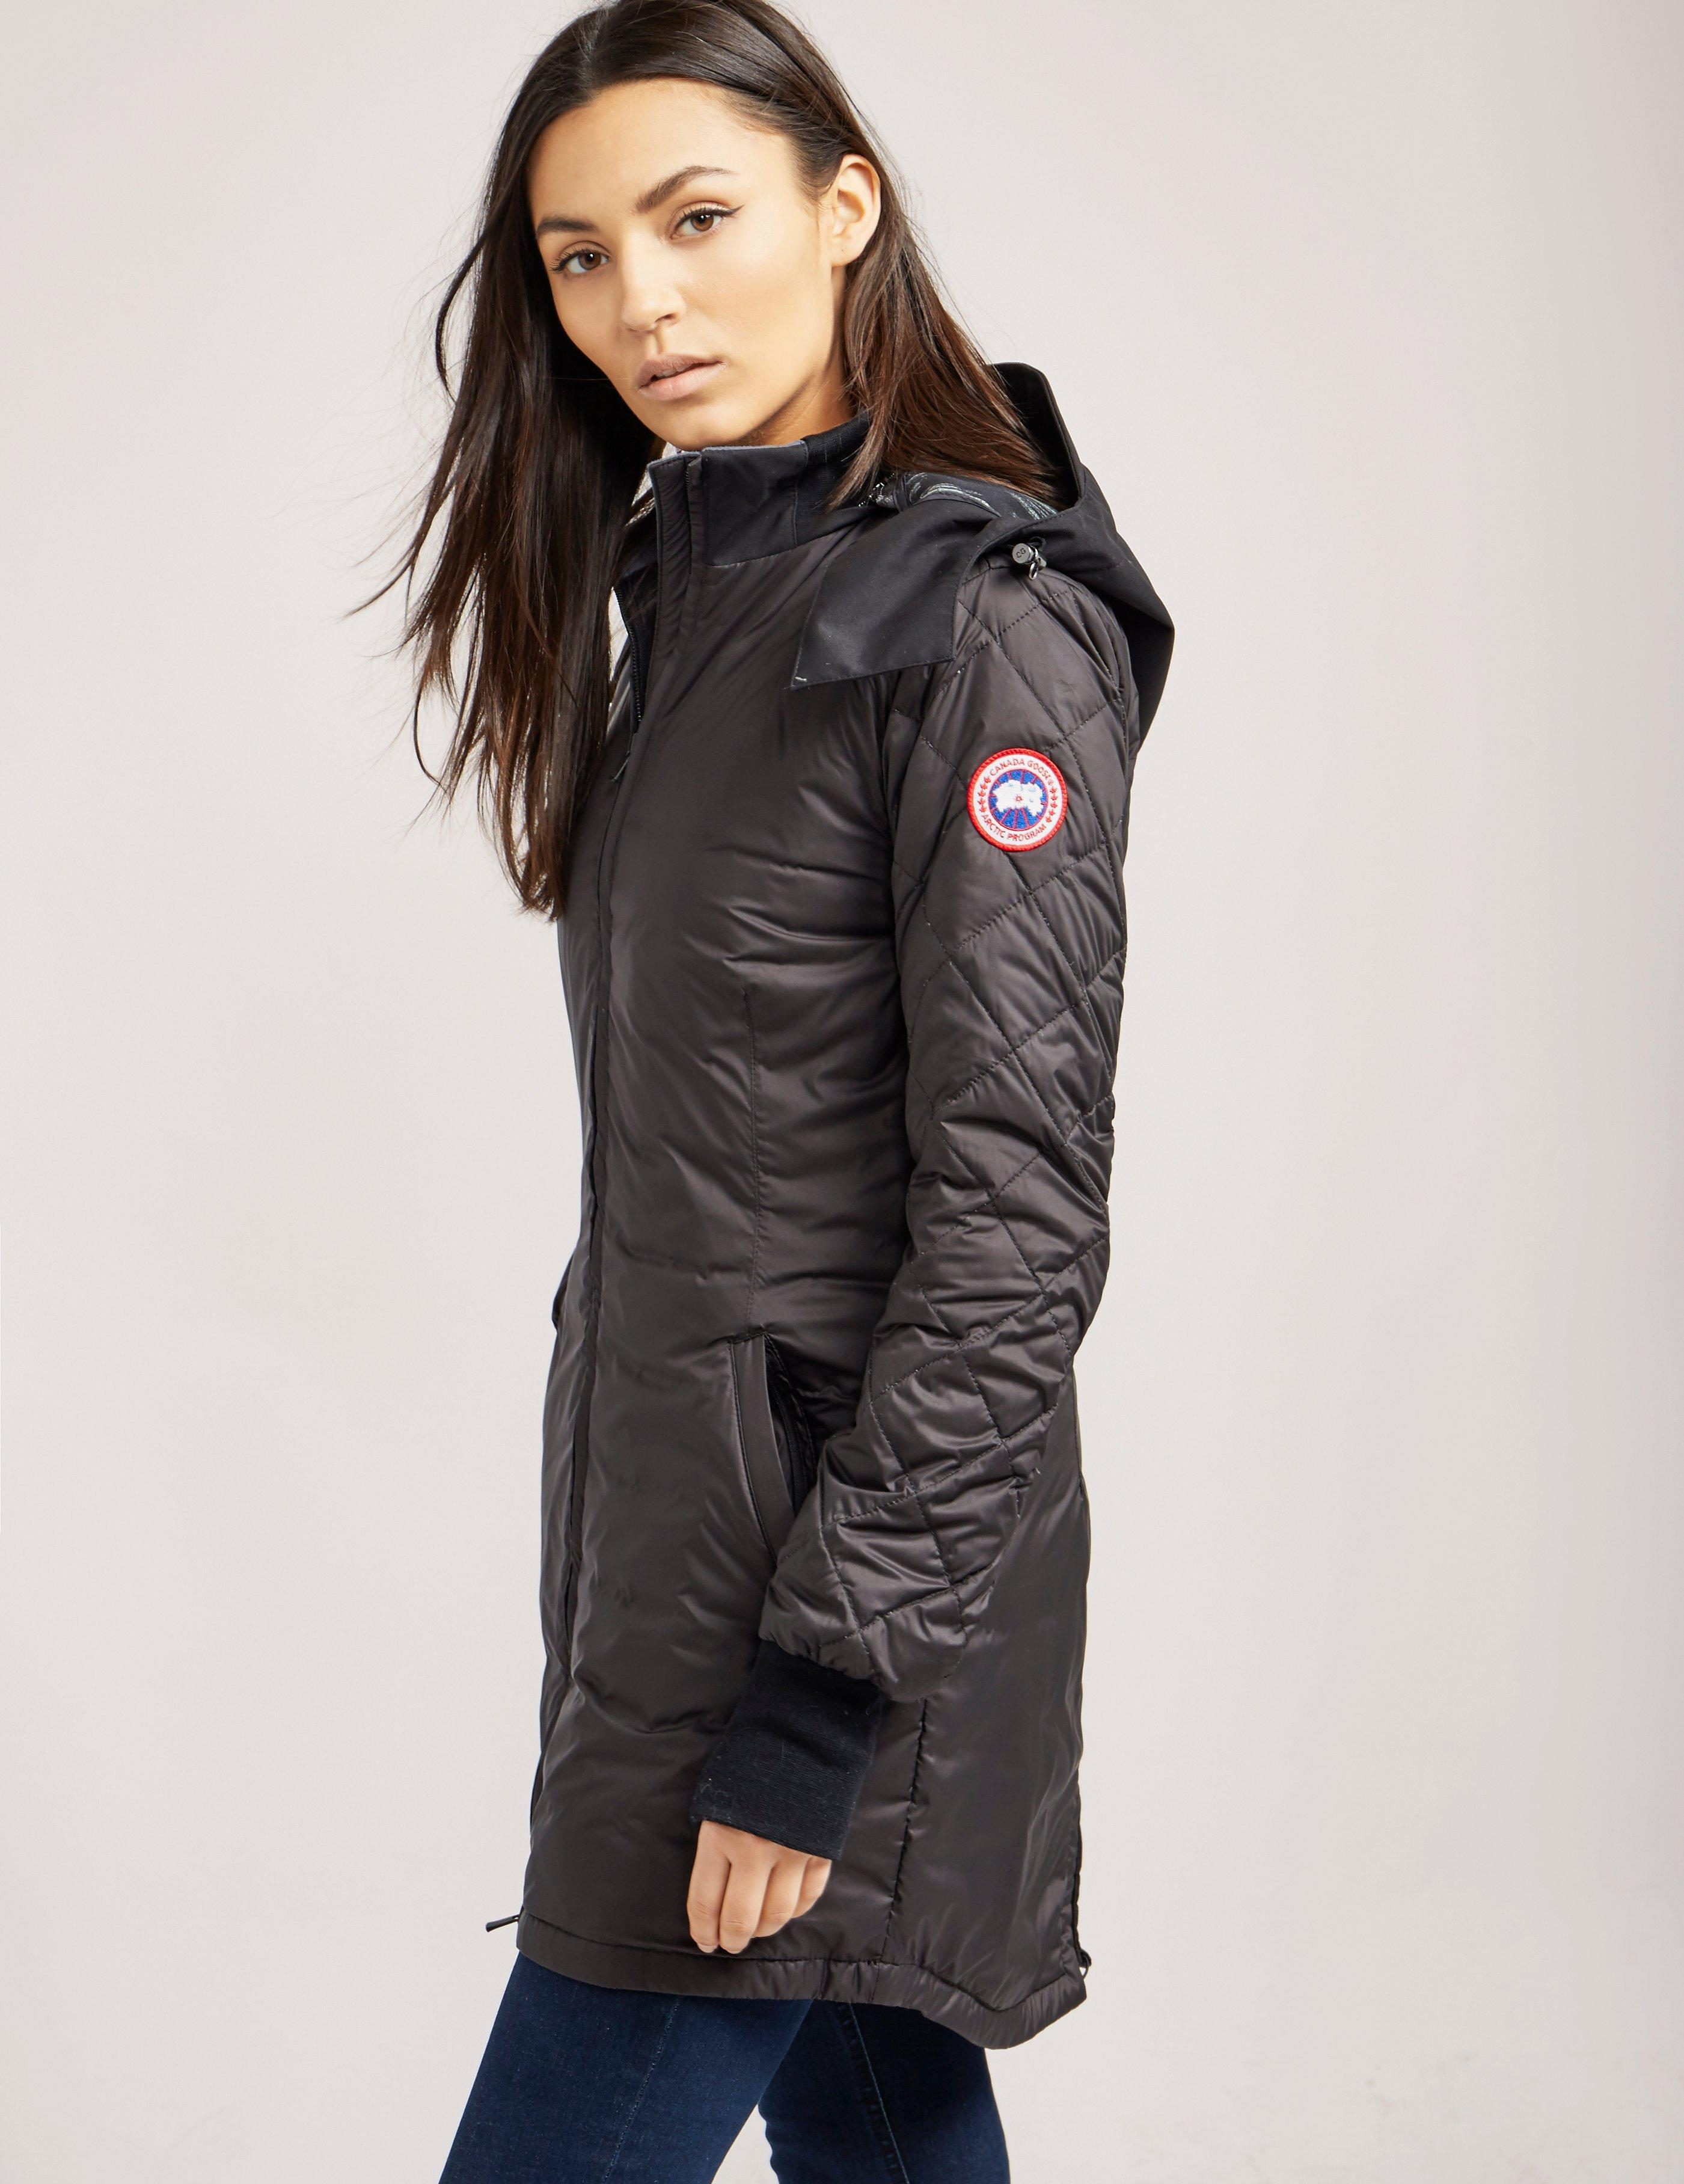 c83eeb6f5c0 ... promo code for canada goose womens stellarton padded jacket black lyst.  view fullscreen 3a13d a719d